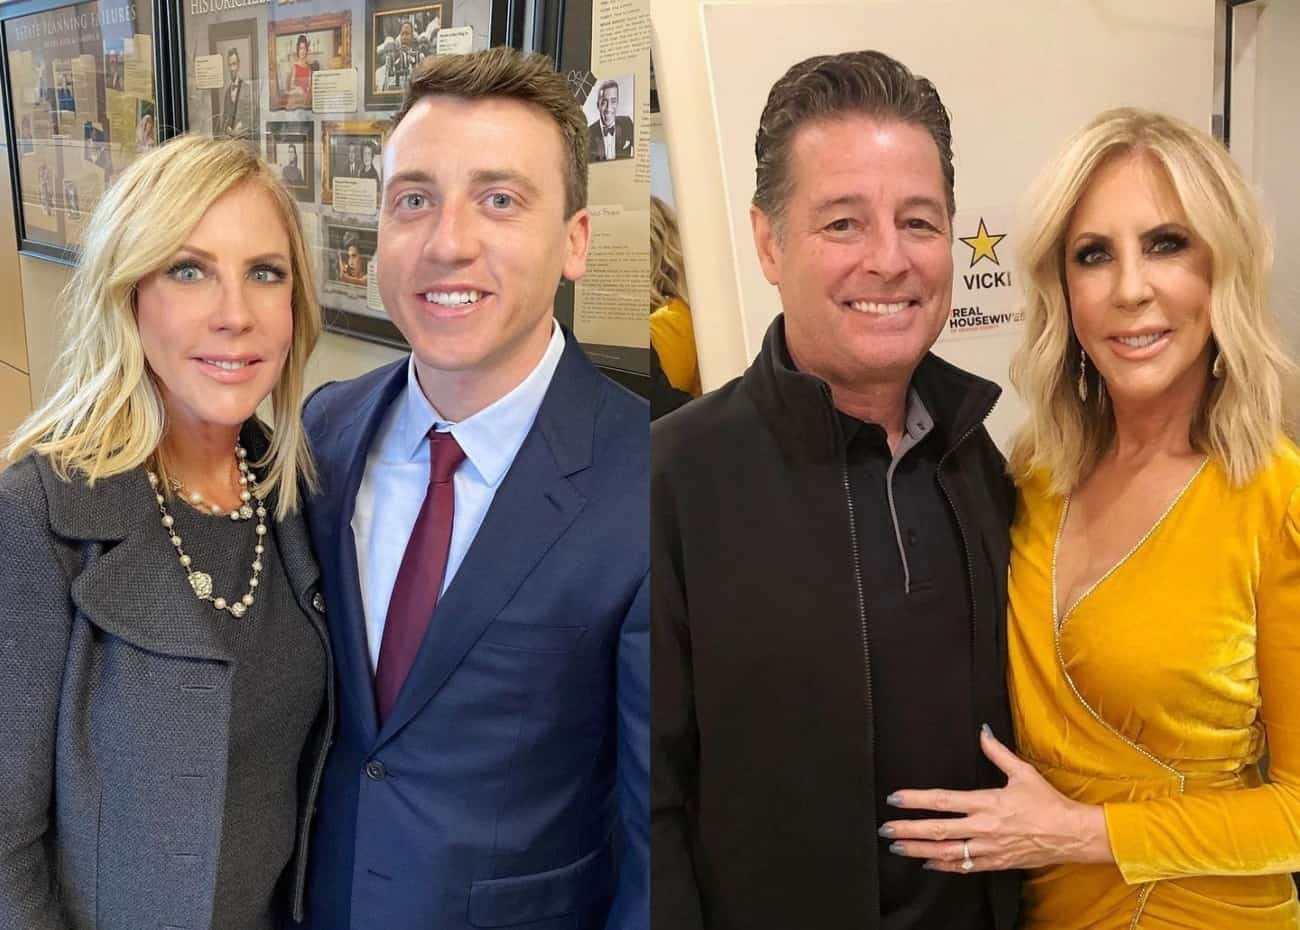 """Vicki Gunvalson's Son Michael Wolfsmith Shades Steve Lodge, Hopes RHOC Alum """"Doesn't Fund"""" His Campaign for Governor of California"""